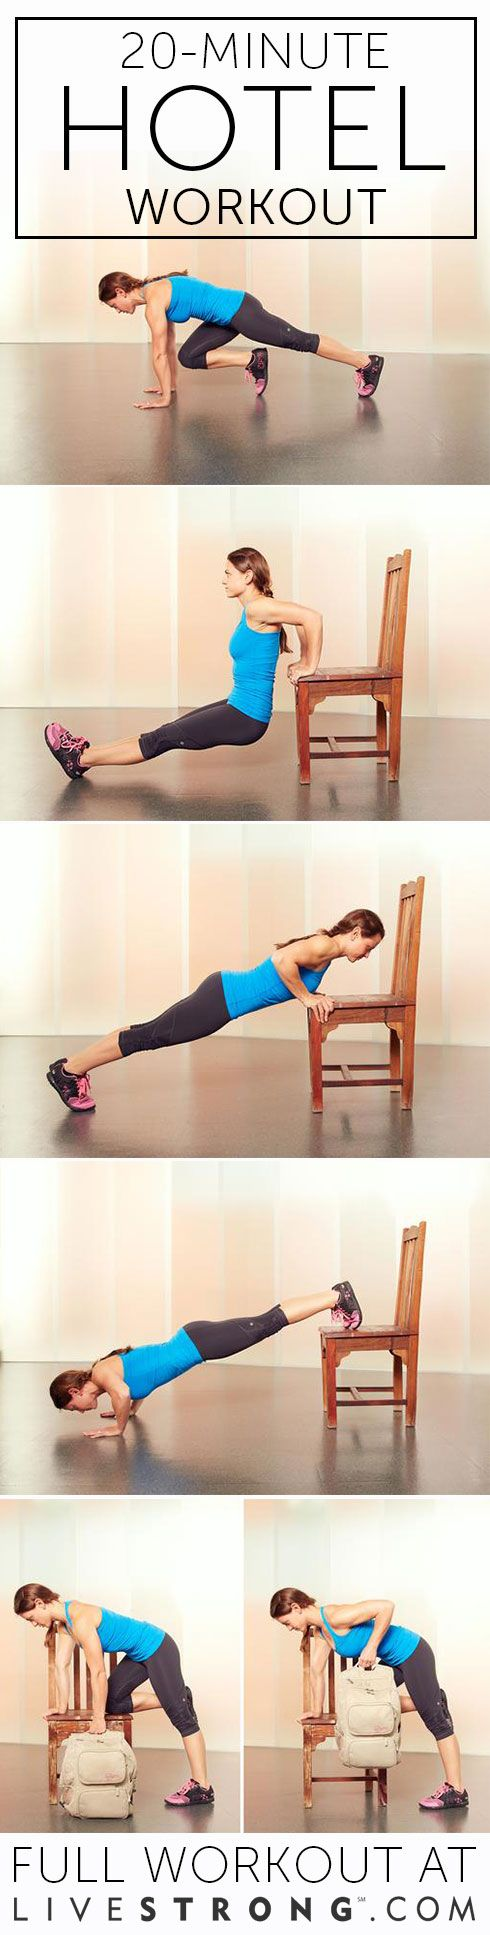 281 Best Fitness One Sheets Images On Pinterest Exercises Exercise Routines And Exercise Workouts